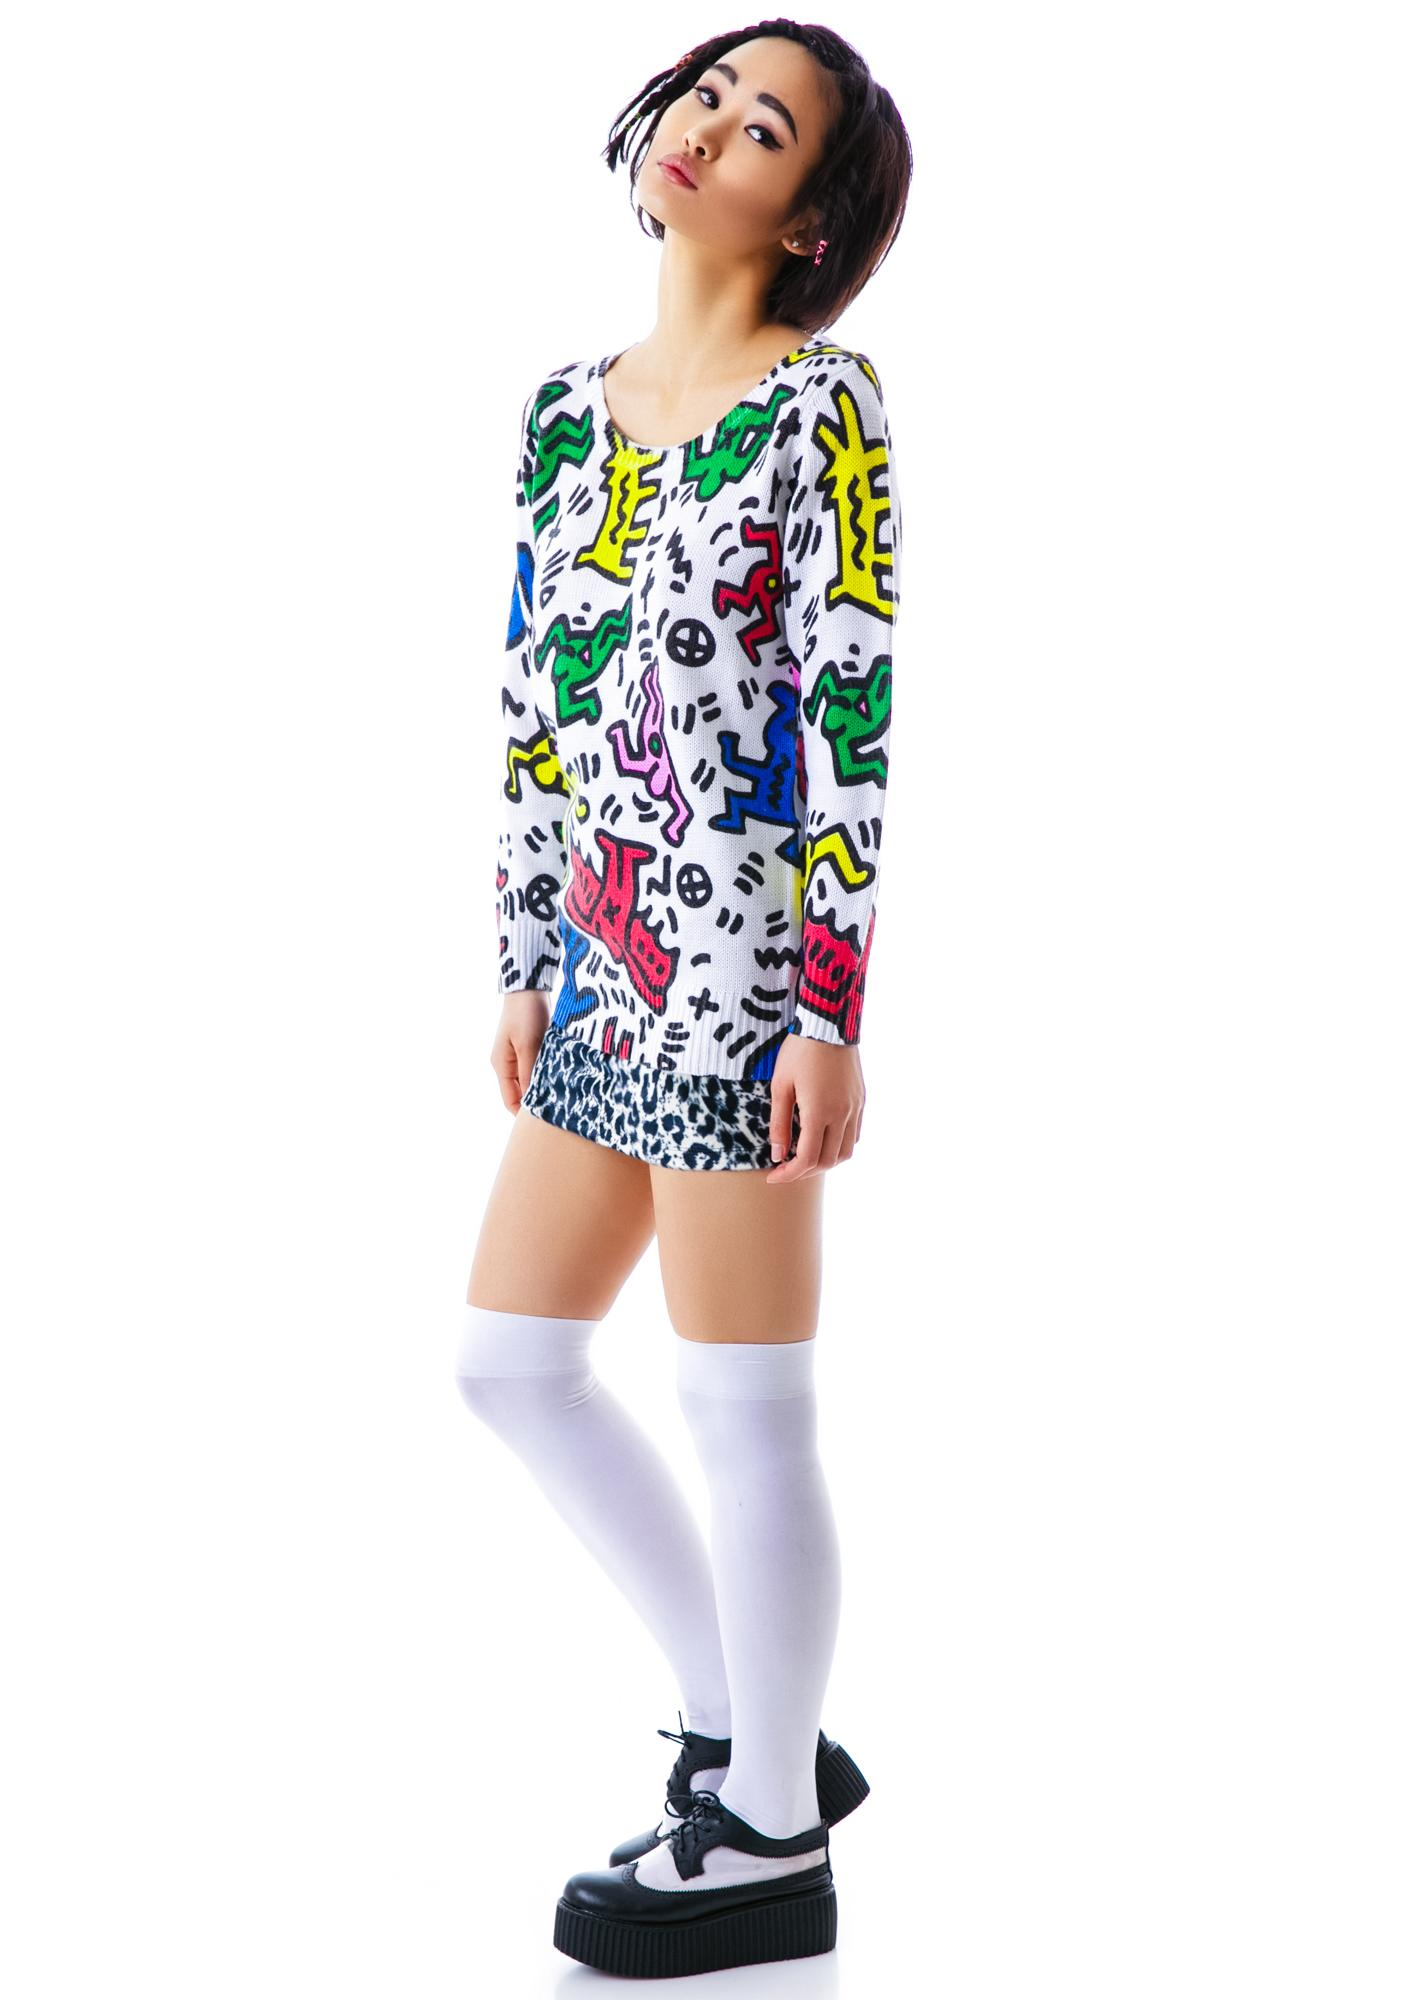 Joyrich Man & Dog Knit Crew